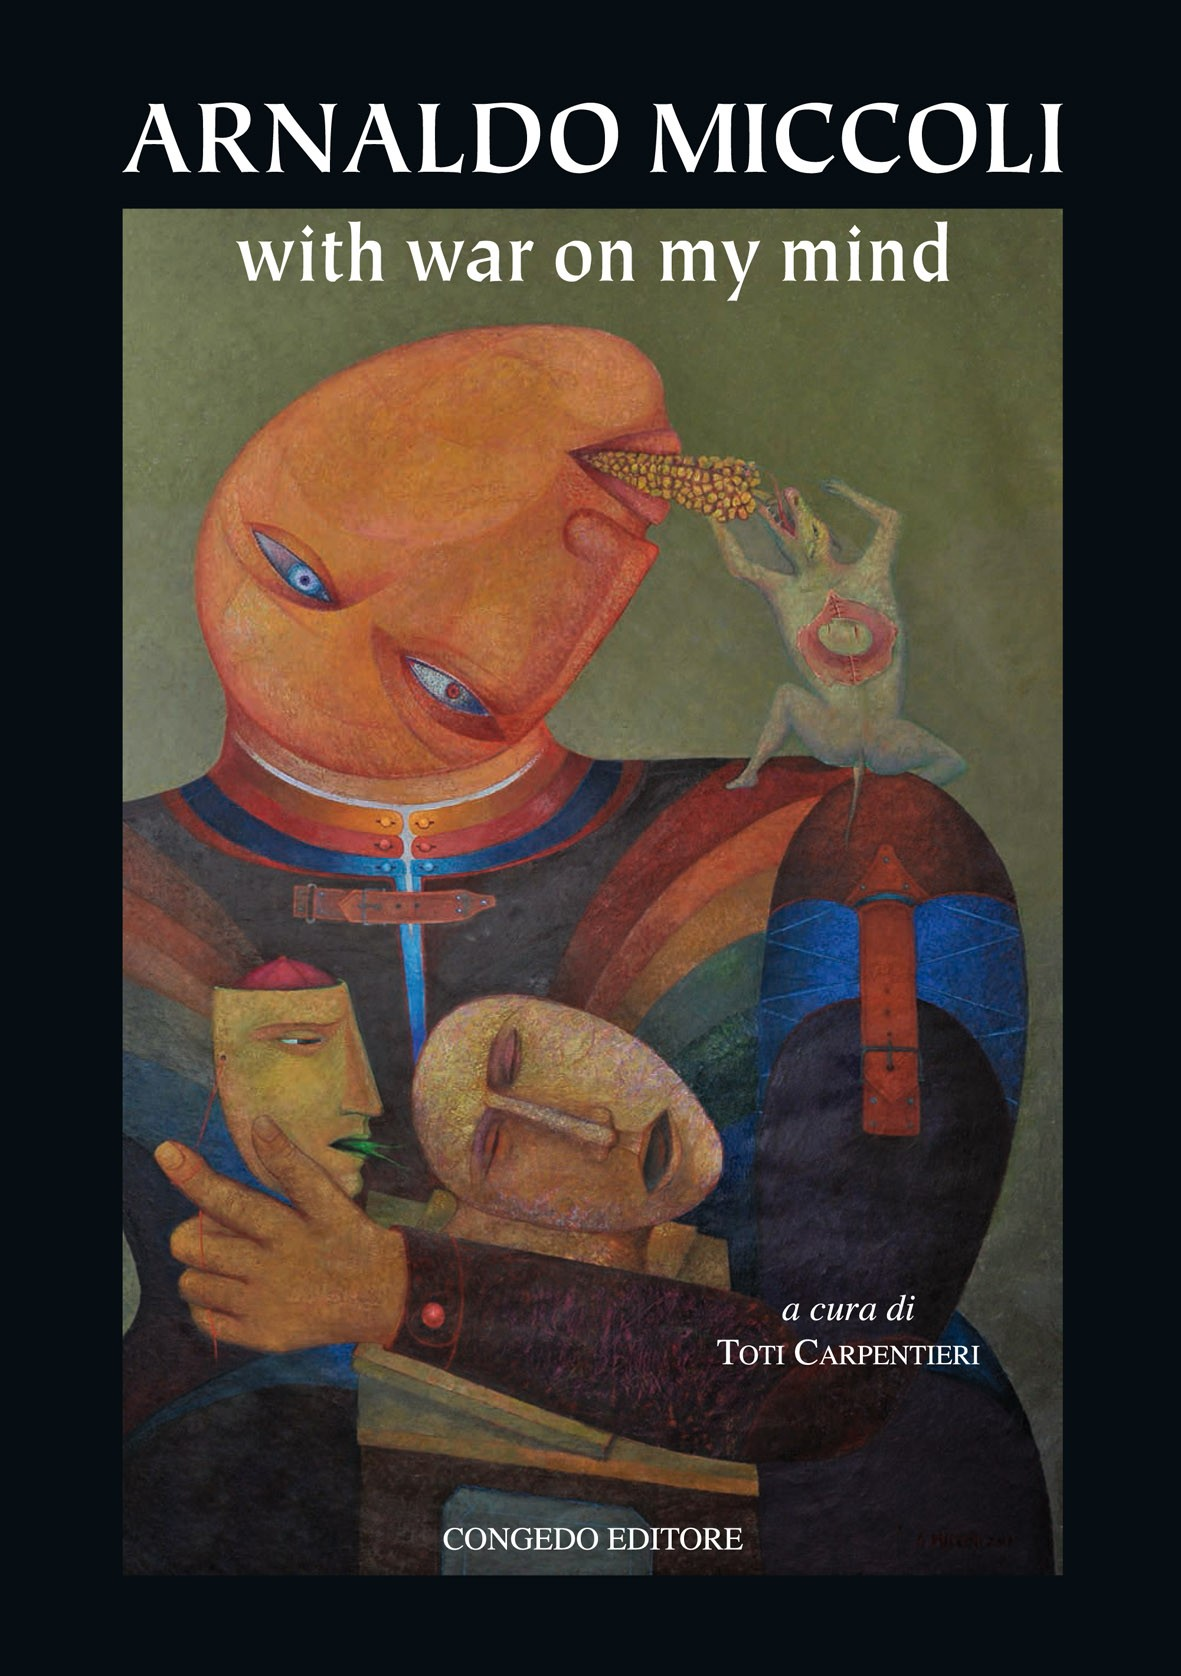 Arnaldo Miccoli. With war on my mind